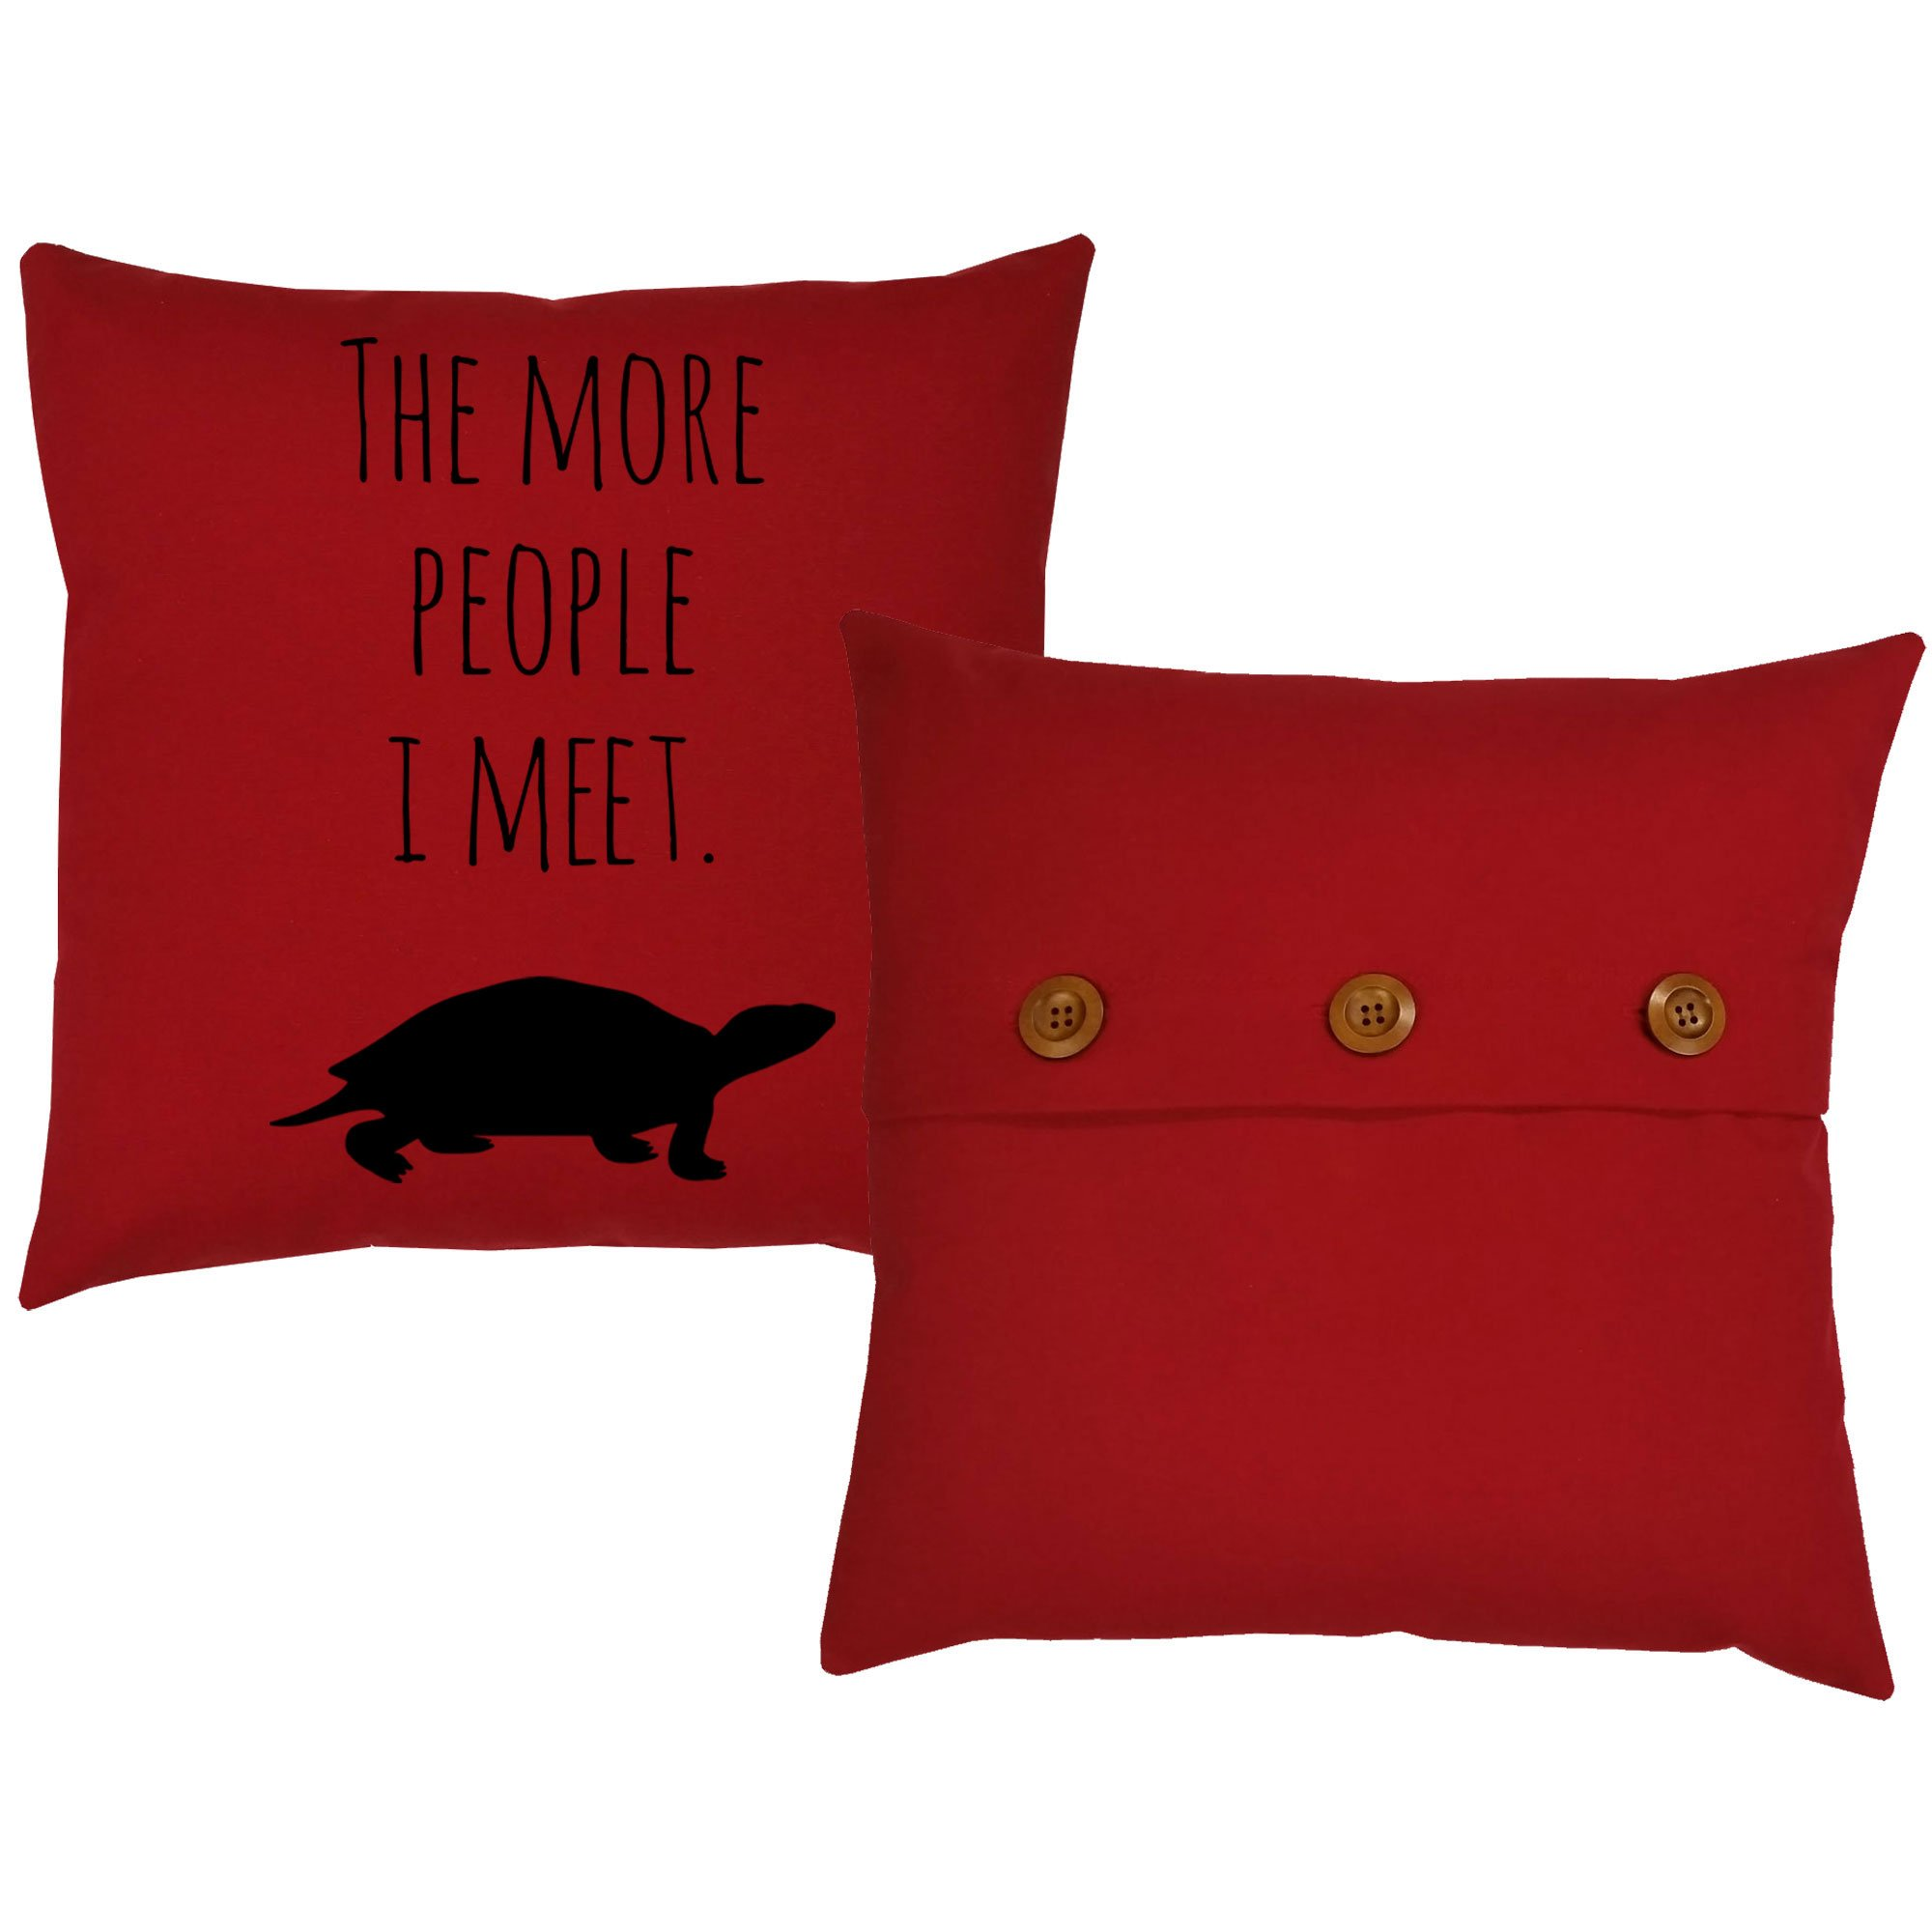 Set of 2 RoomCraft I Love My Turtle Throw Pillows 20x20 Square Red Cotton Cushions by RoomCraft (Image #3)